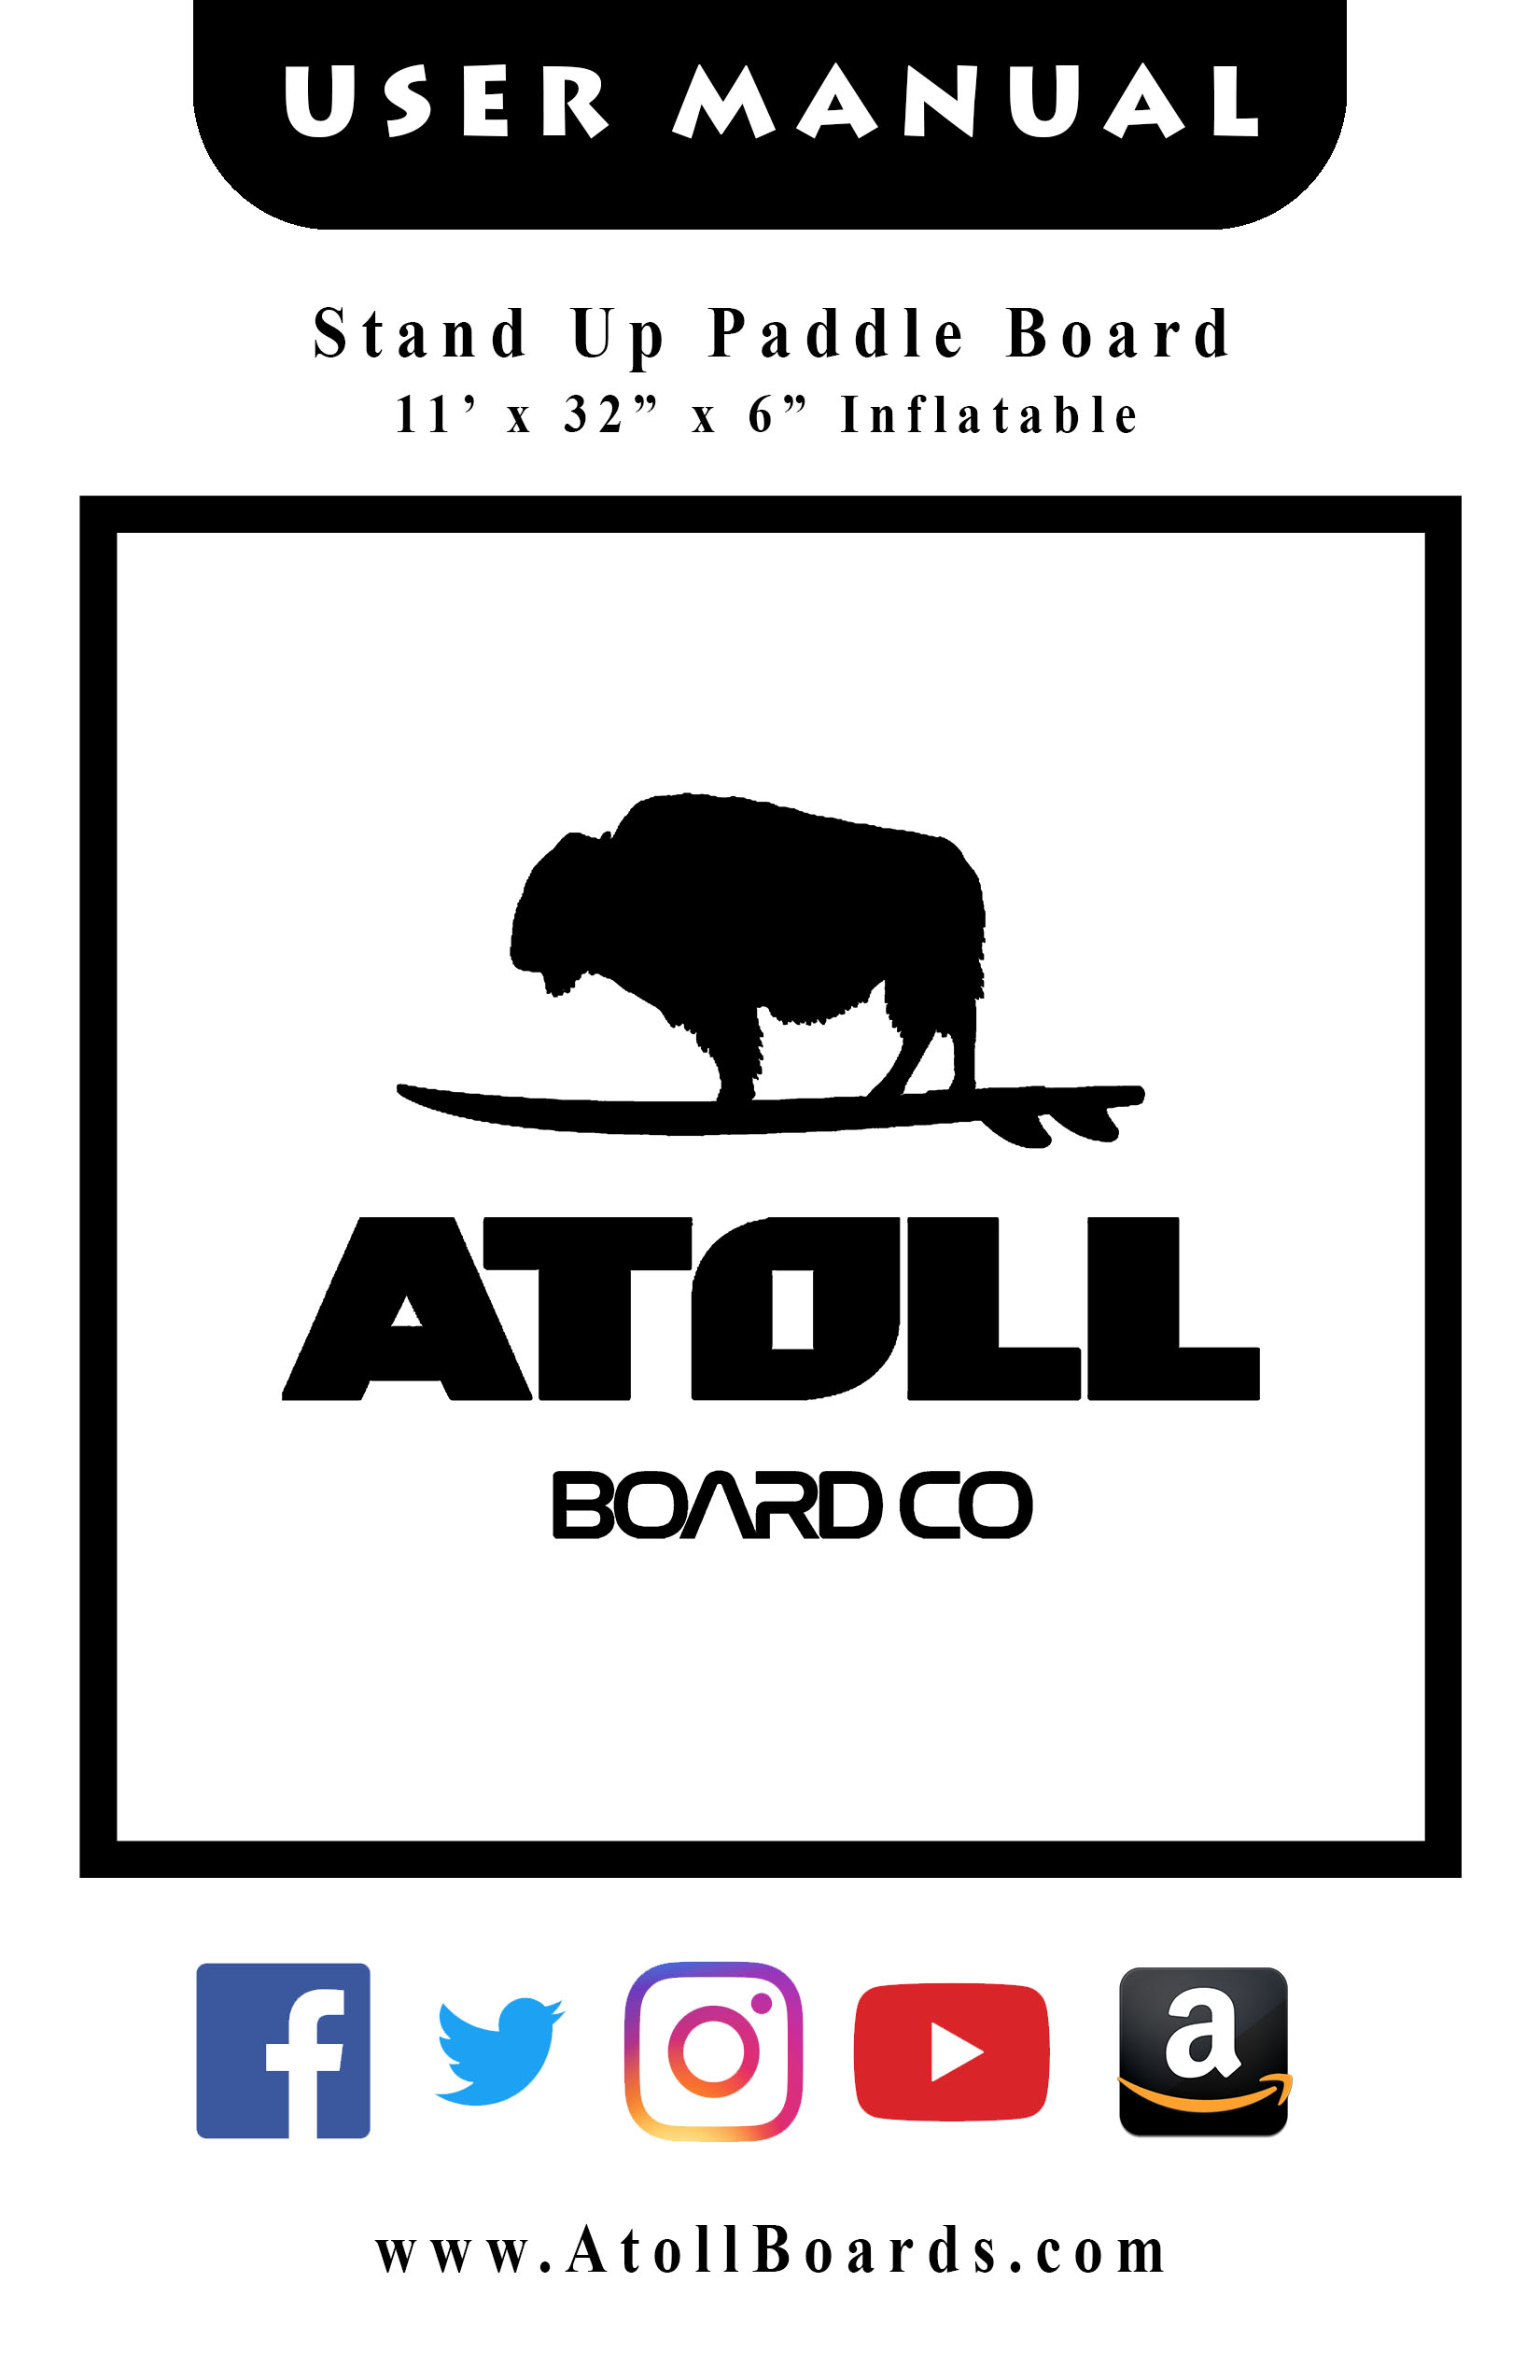 2019 ATOLL iSUP USER MANUAL - 2019 Atoll Boards 11 foot Inflatable StandUp PaddleBoard package user's Manual (Readable PDF Version)(Printable PDF Version)